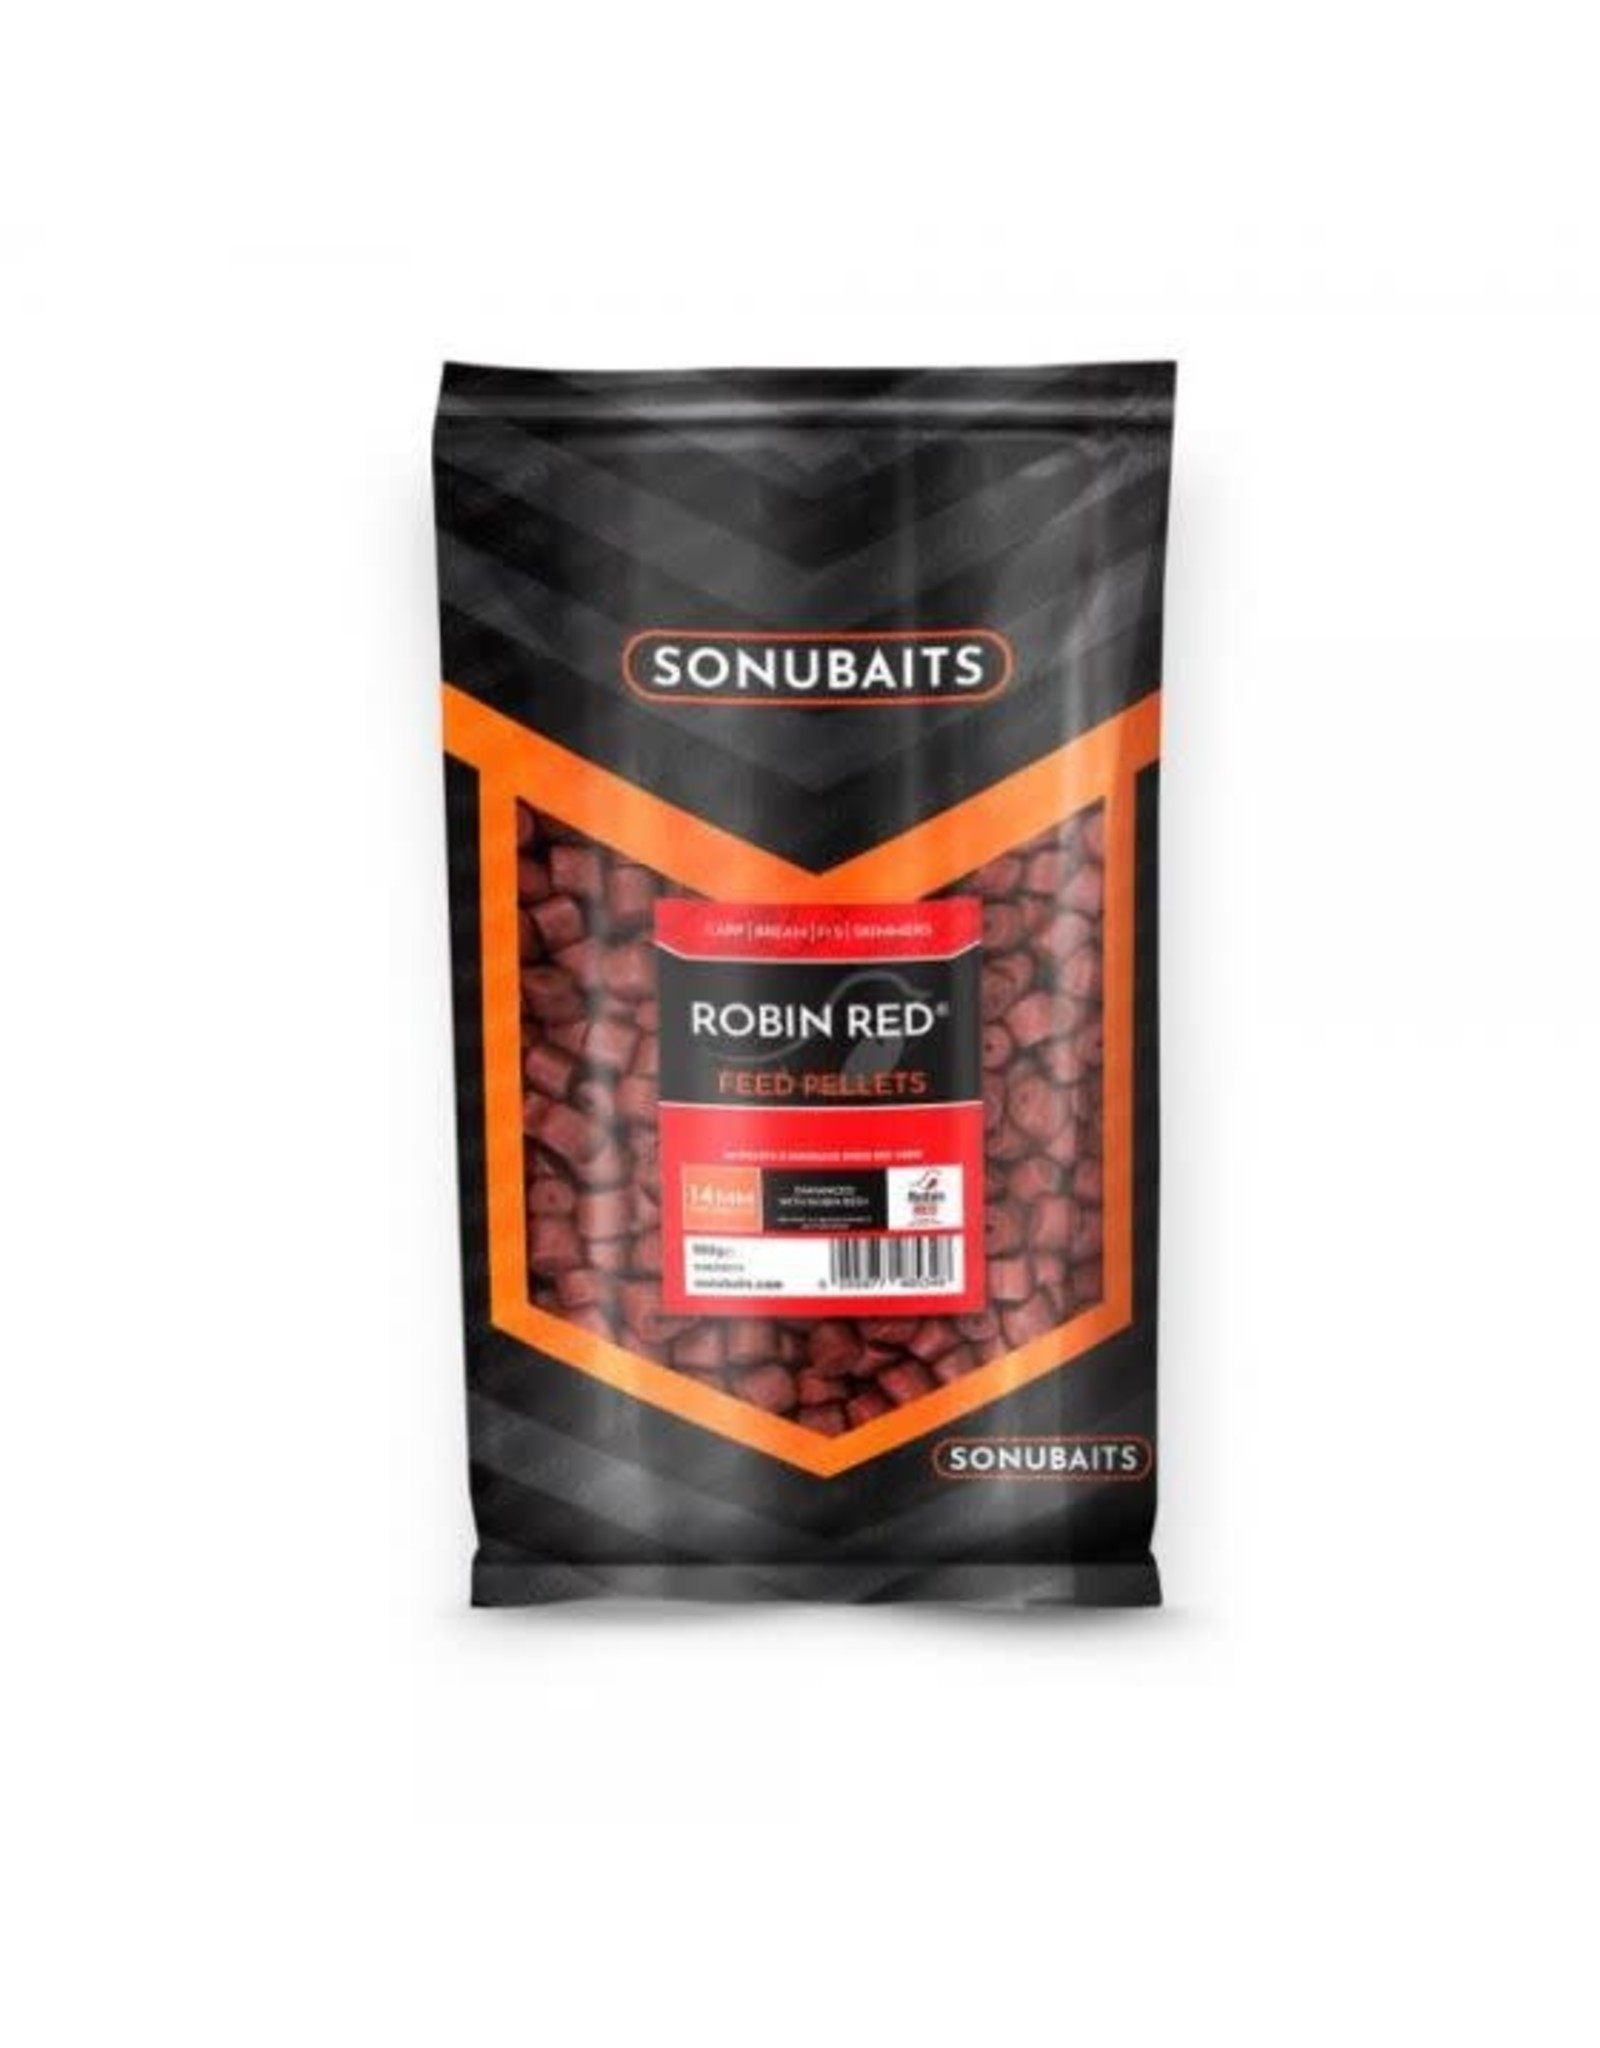 SONUBAITS Robin Red Feed (Drilled) 14mm